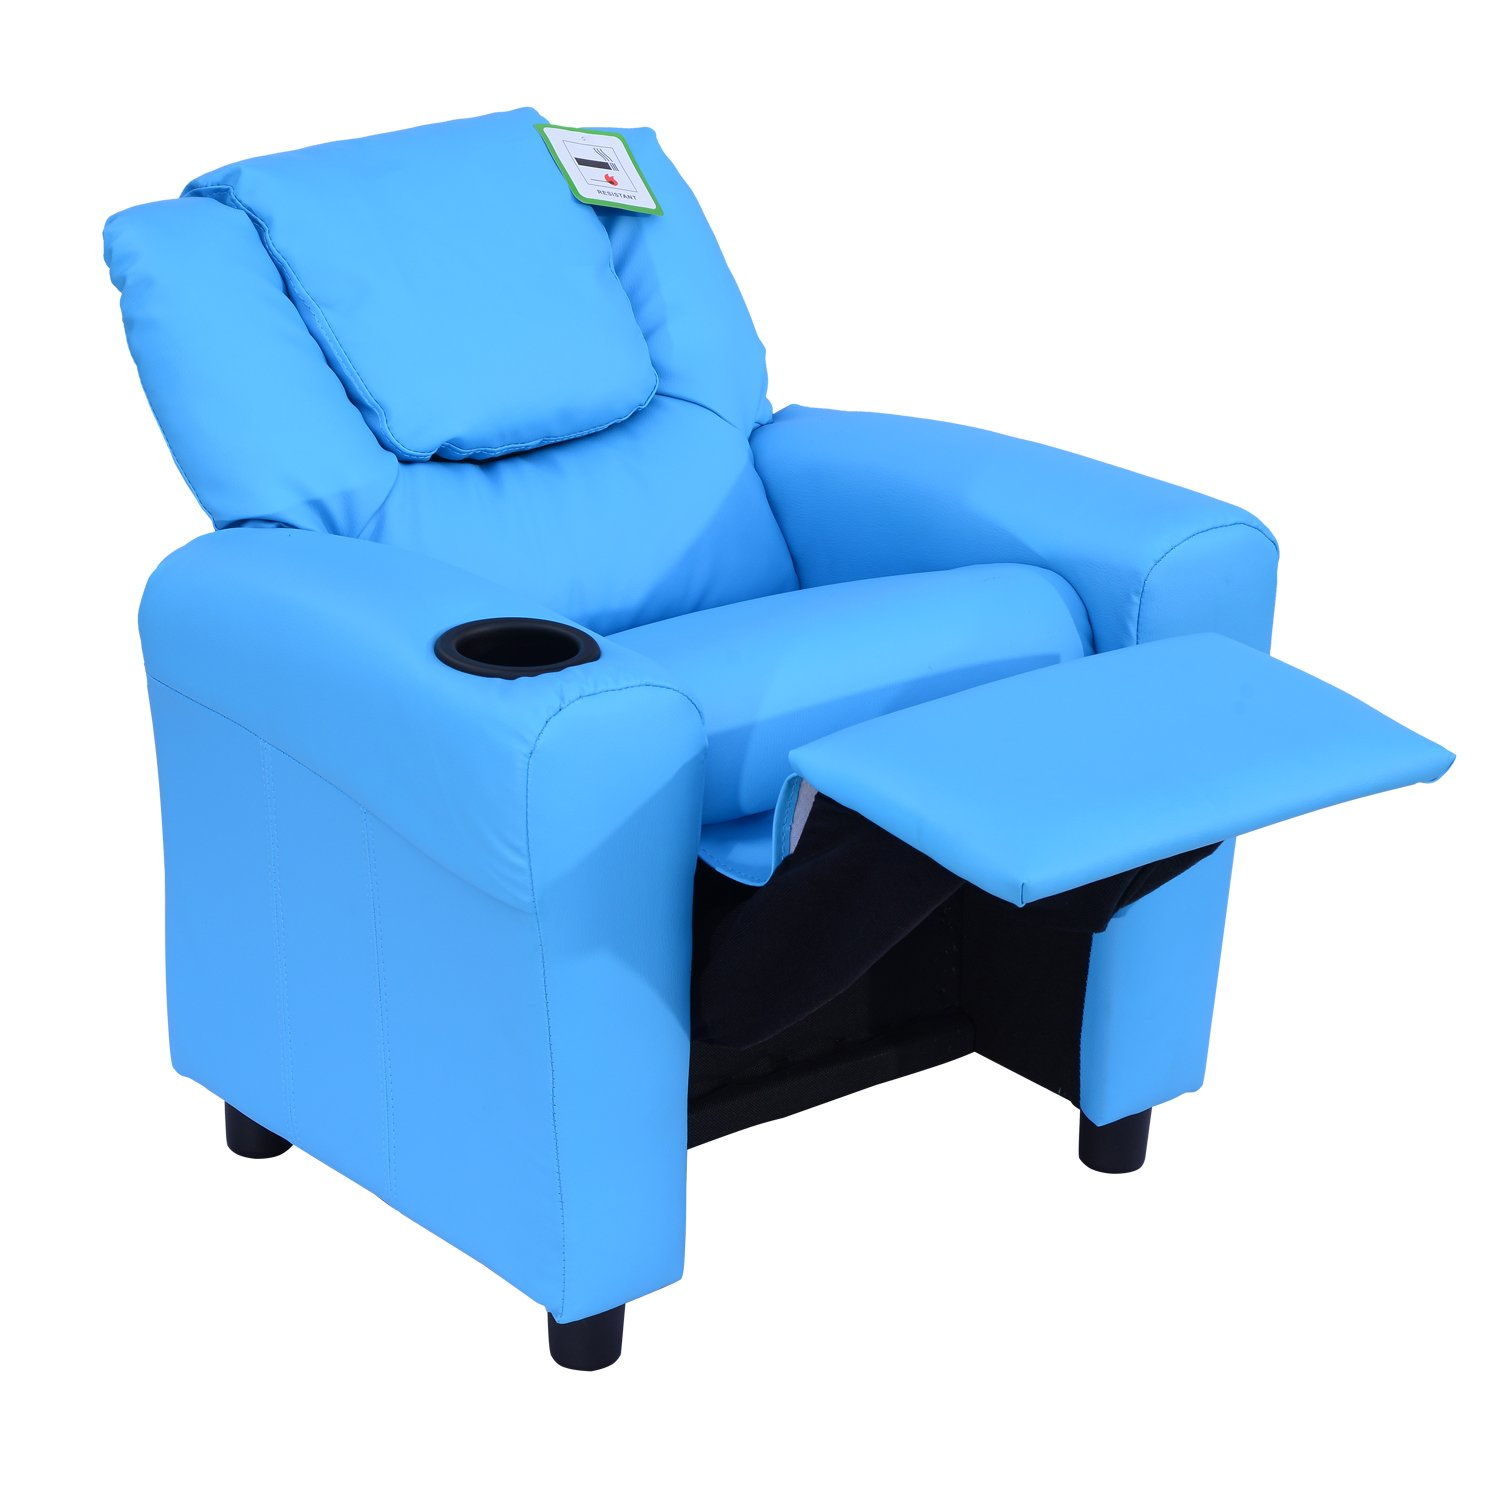 Homcom Kids Children Recliner Lounger Armchair Games Chair Sofa Seat PU  Leather Look W/Cup